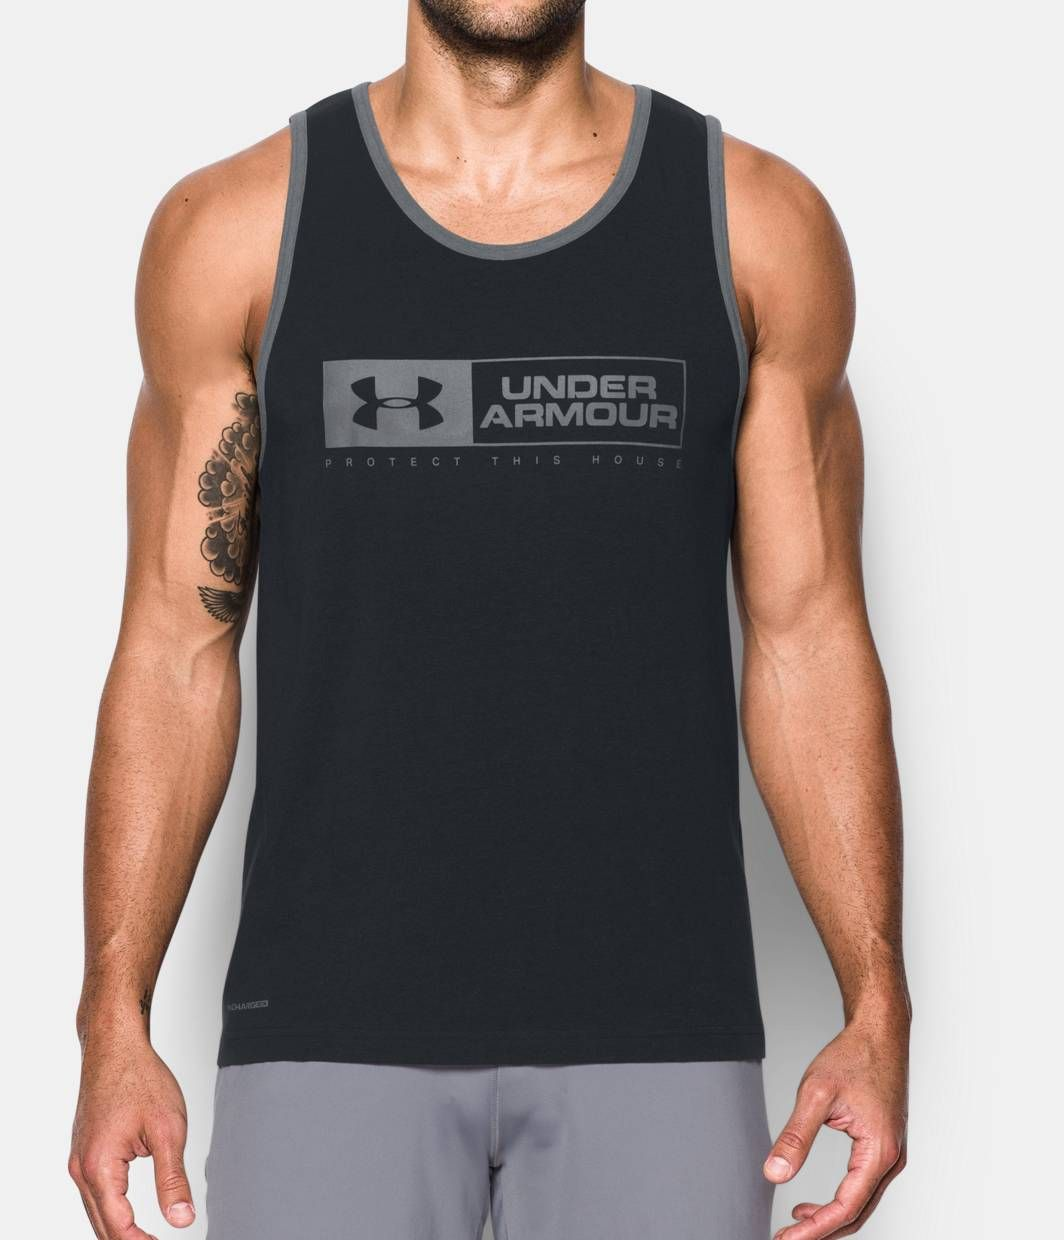 e32cc3d8e82 Men's UA Left Lockup Tank | Under Armour US | all I want for ...